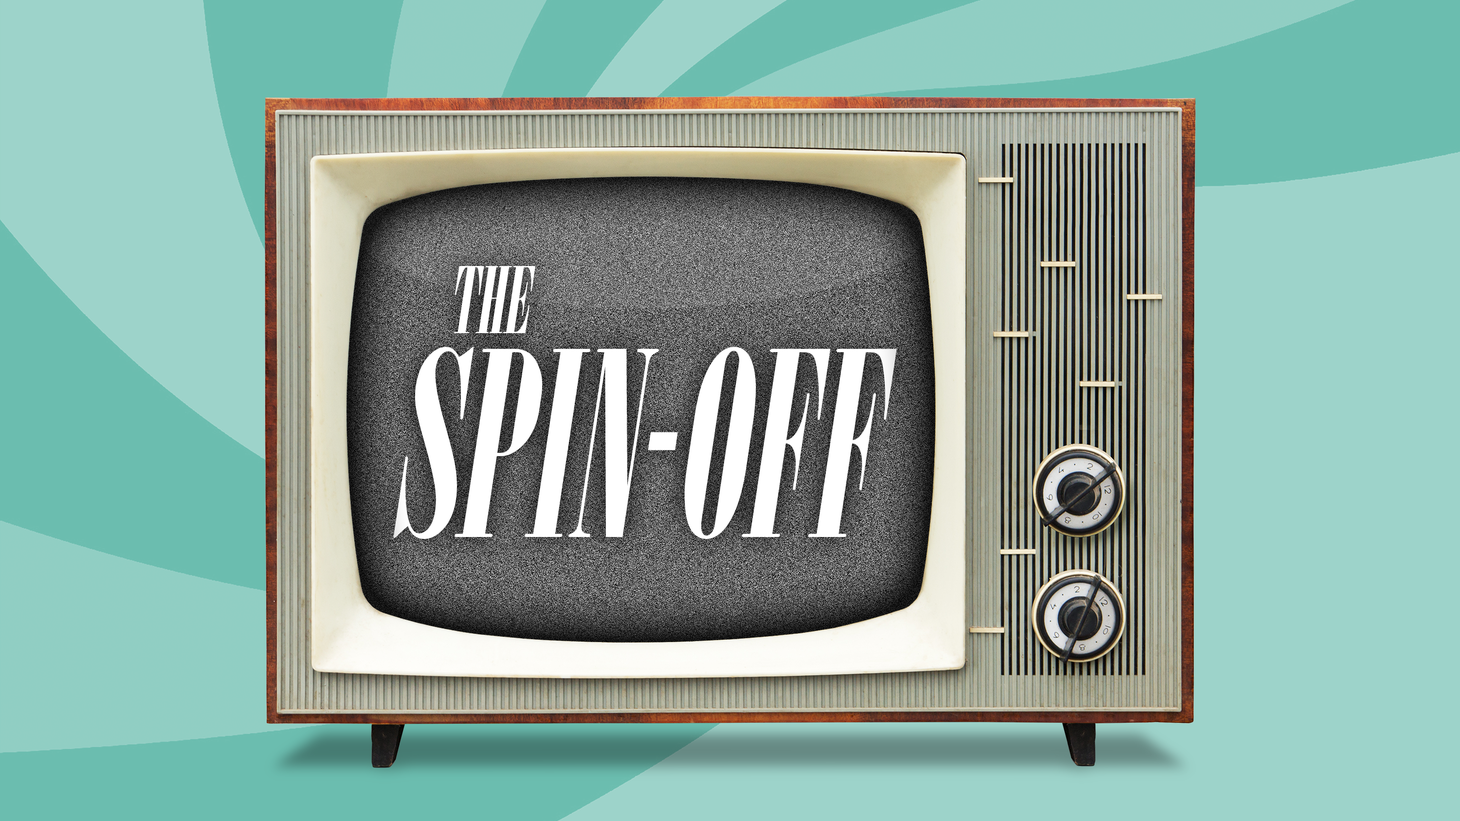 In this special edition of the Spin-Off, we bring you a conversation between Michael Schneider and Fox chiefs Dana Walden and Gary Newman, recorded as a part of Paley Dialogues LA, hosted by the Paley Media Council.